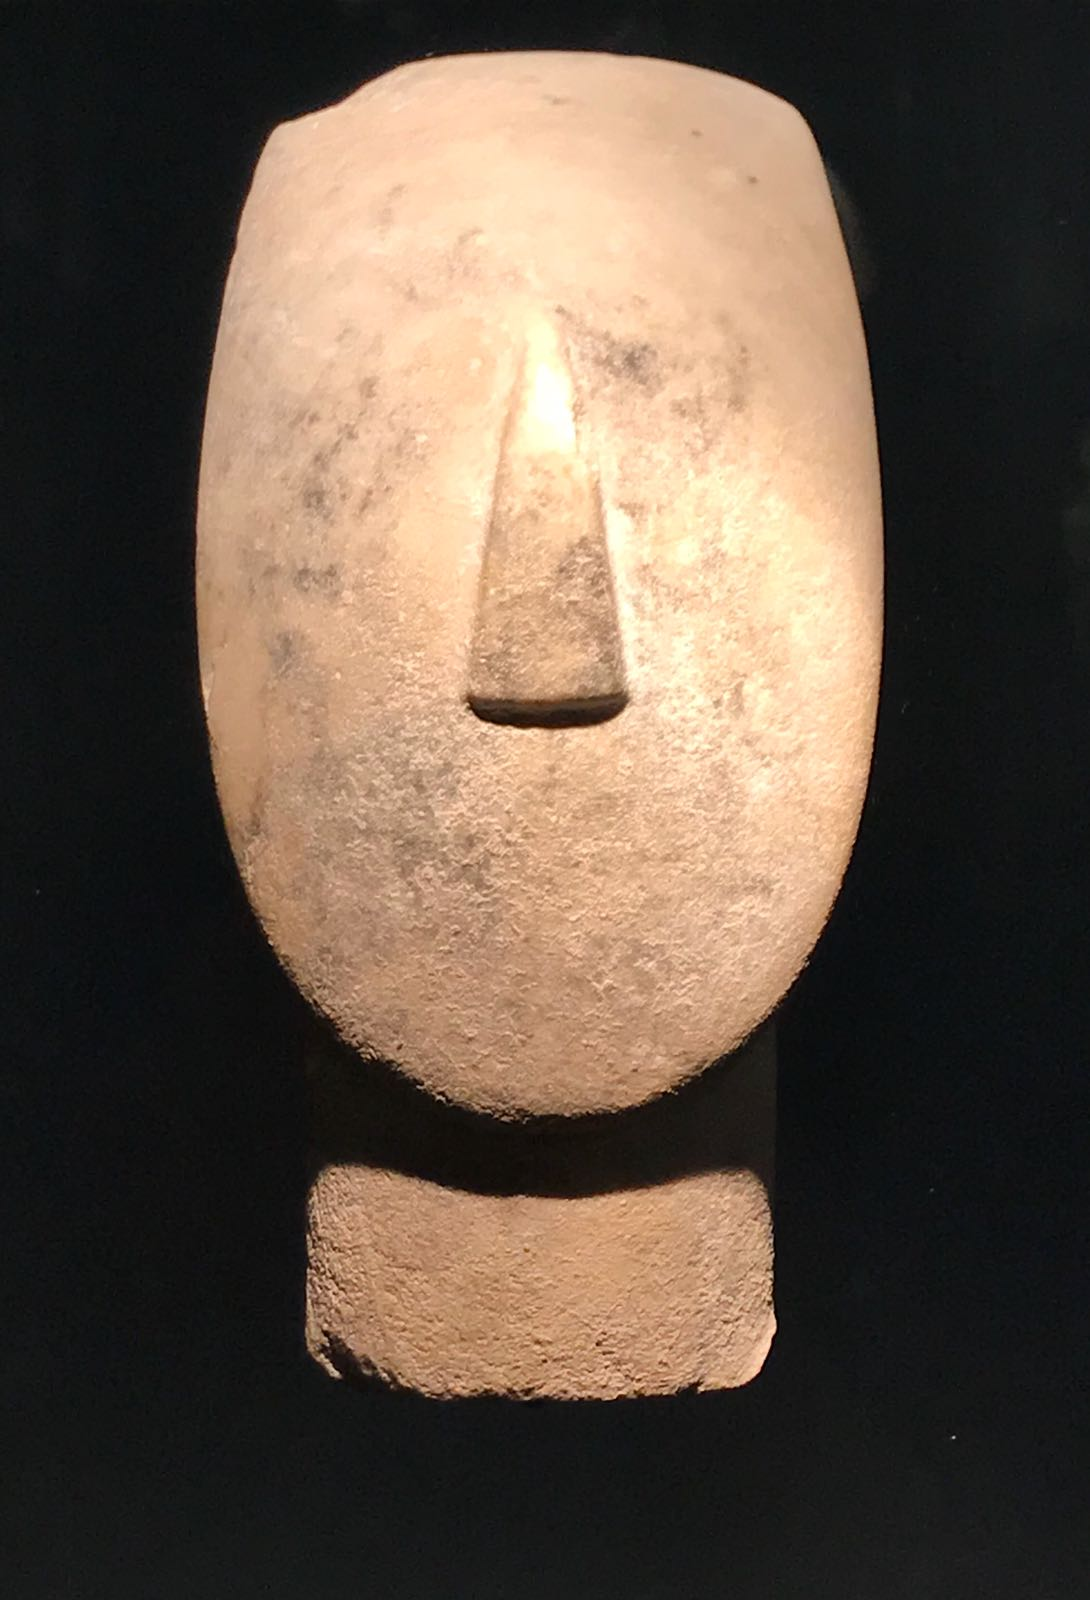 Head of a sculpture from ancient Greece with a featureless face and triangular nose